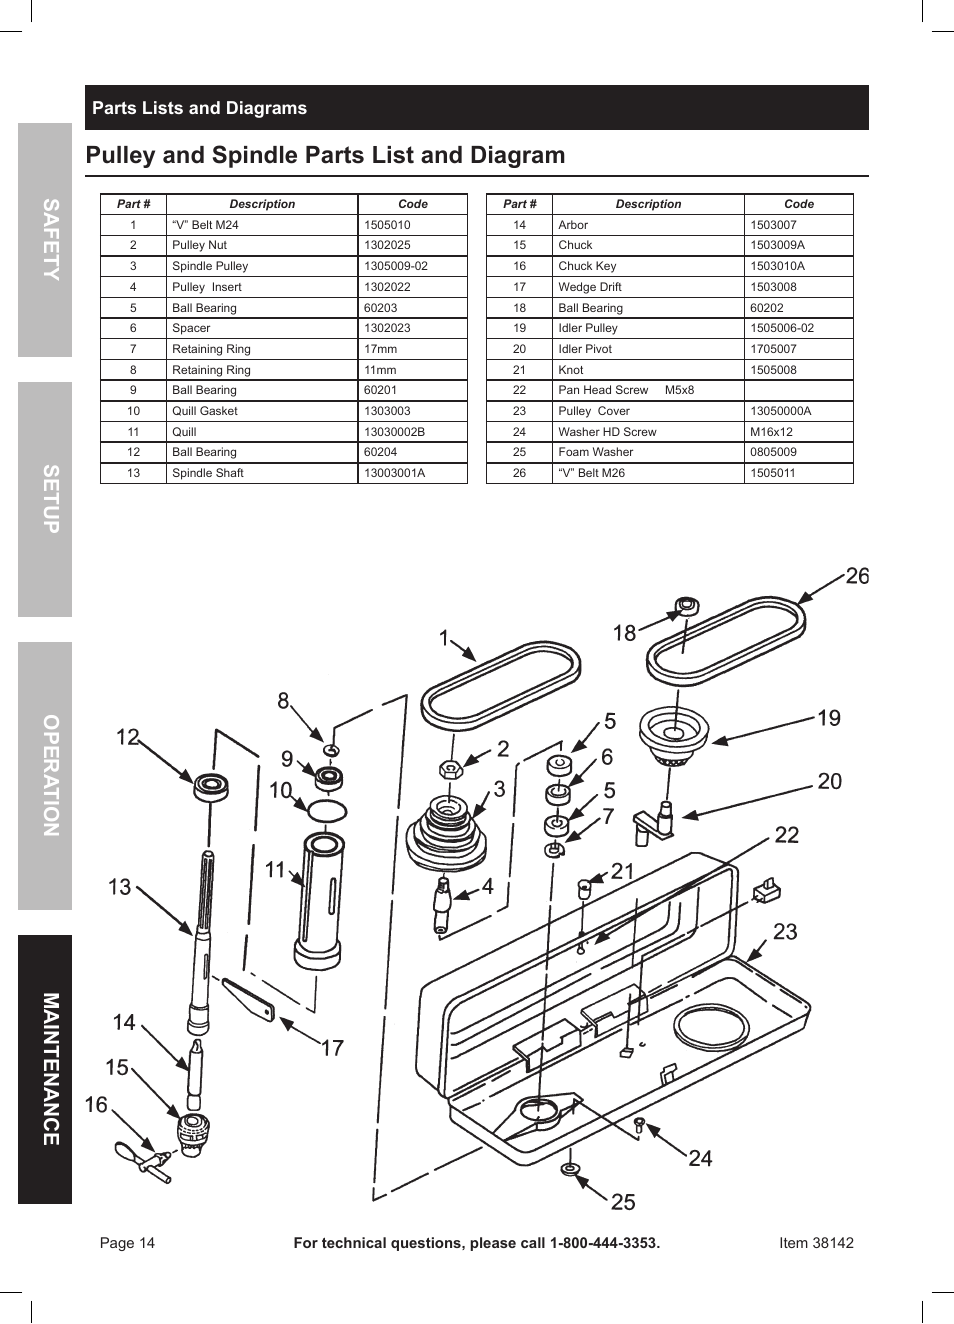 hight resolution of pulley and spindle parts list and diagram safety opera tion maintenance setup parts lists and diagrams harbor freight tools central machinery 13 bench